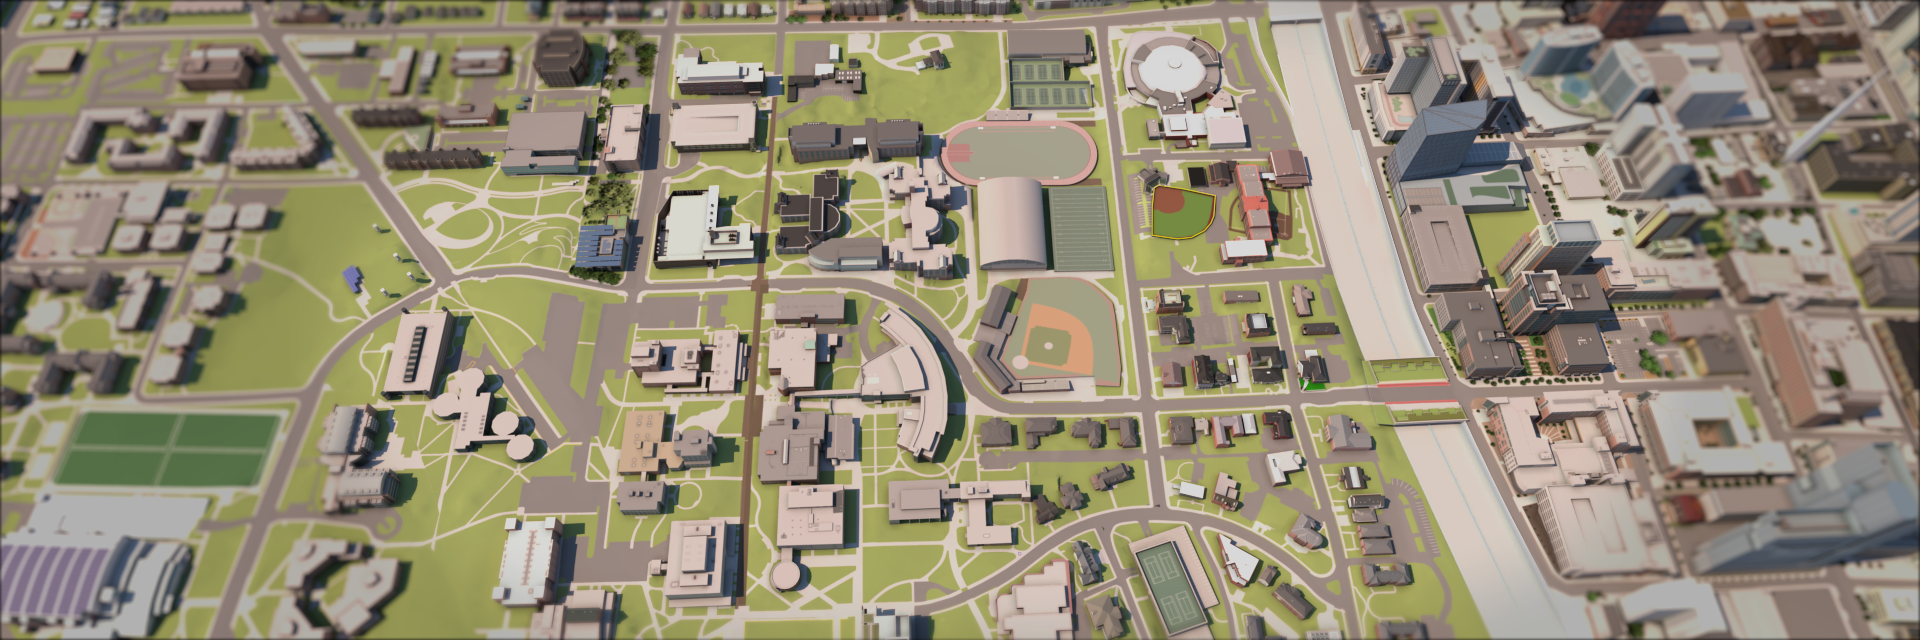 Rendered View of campus